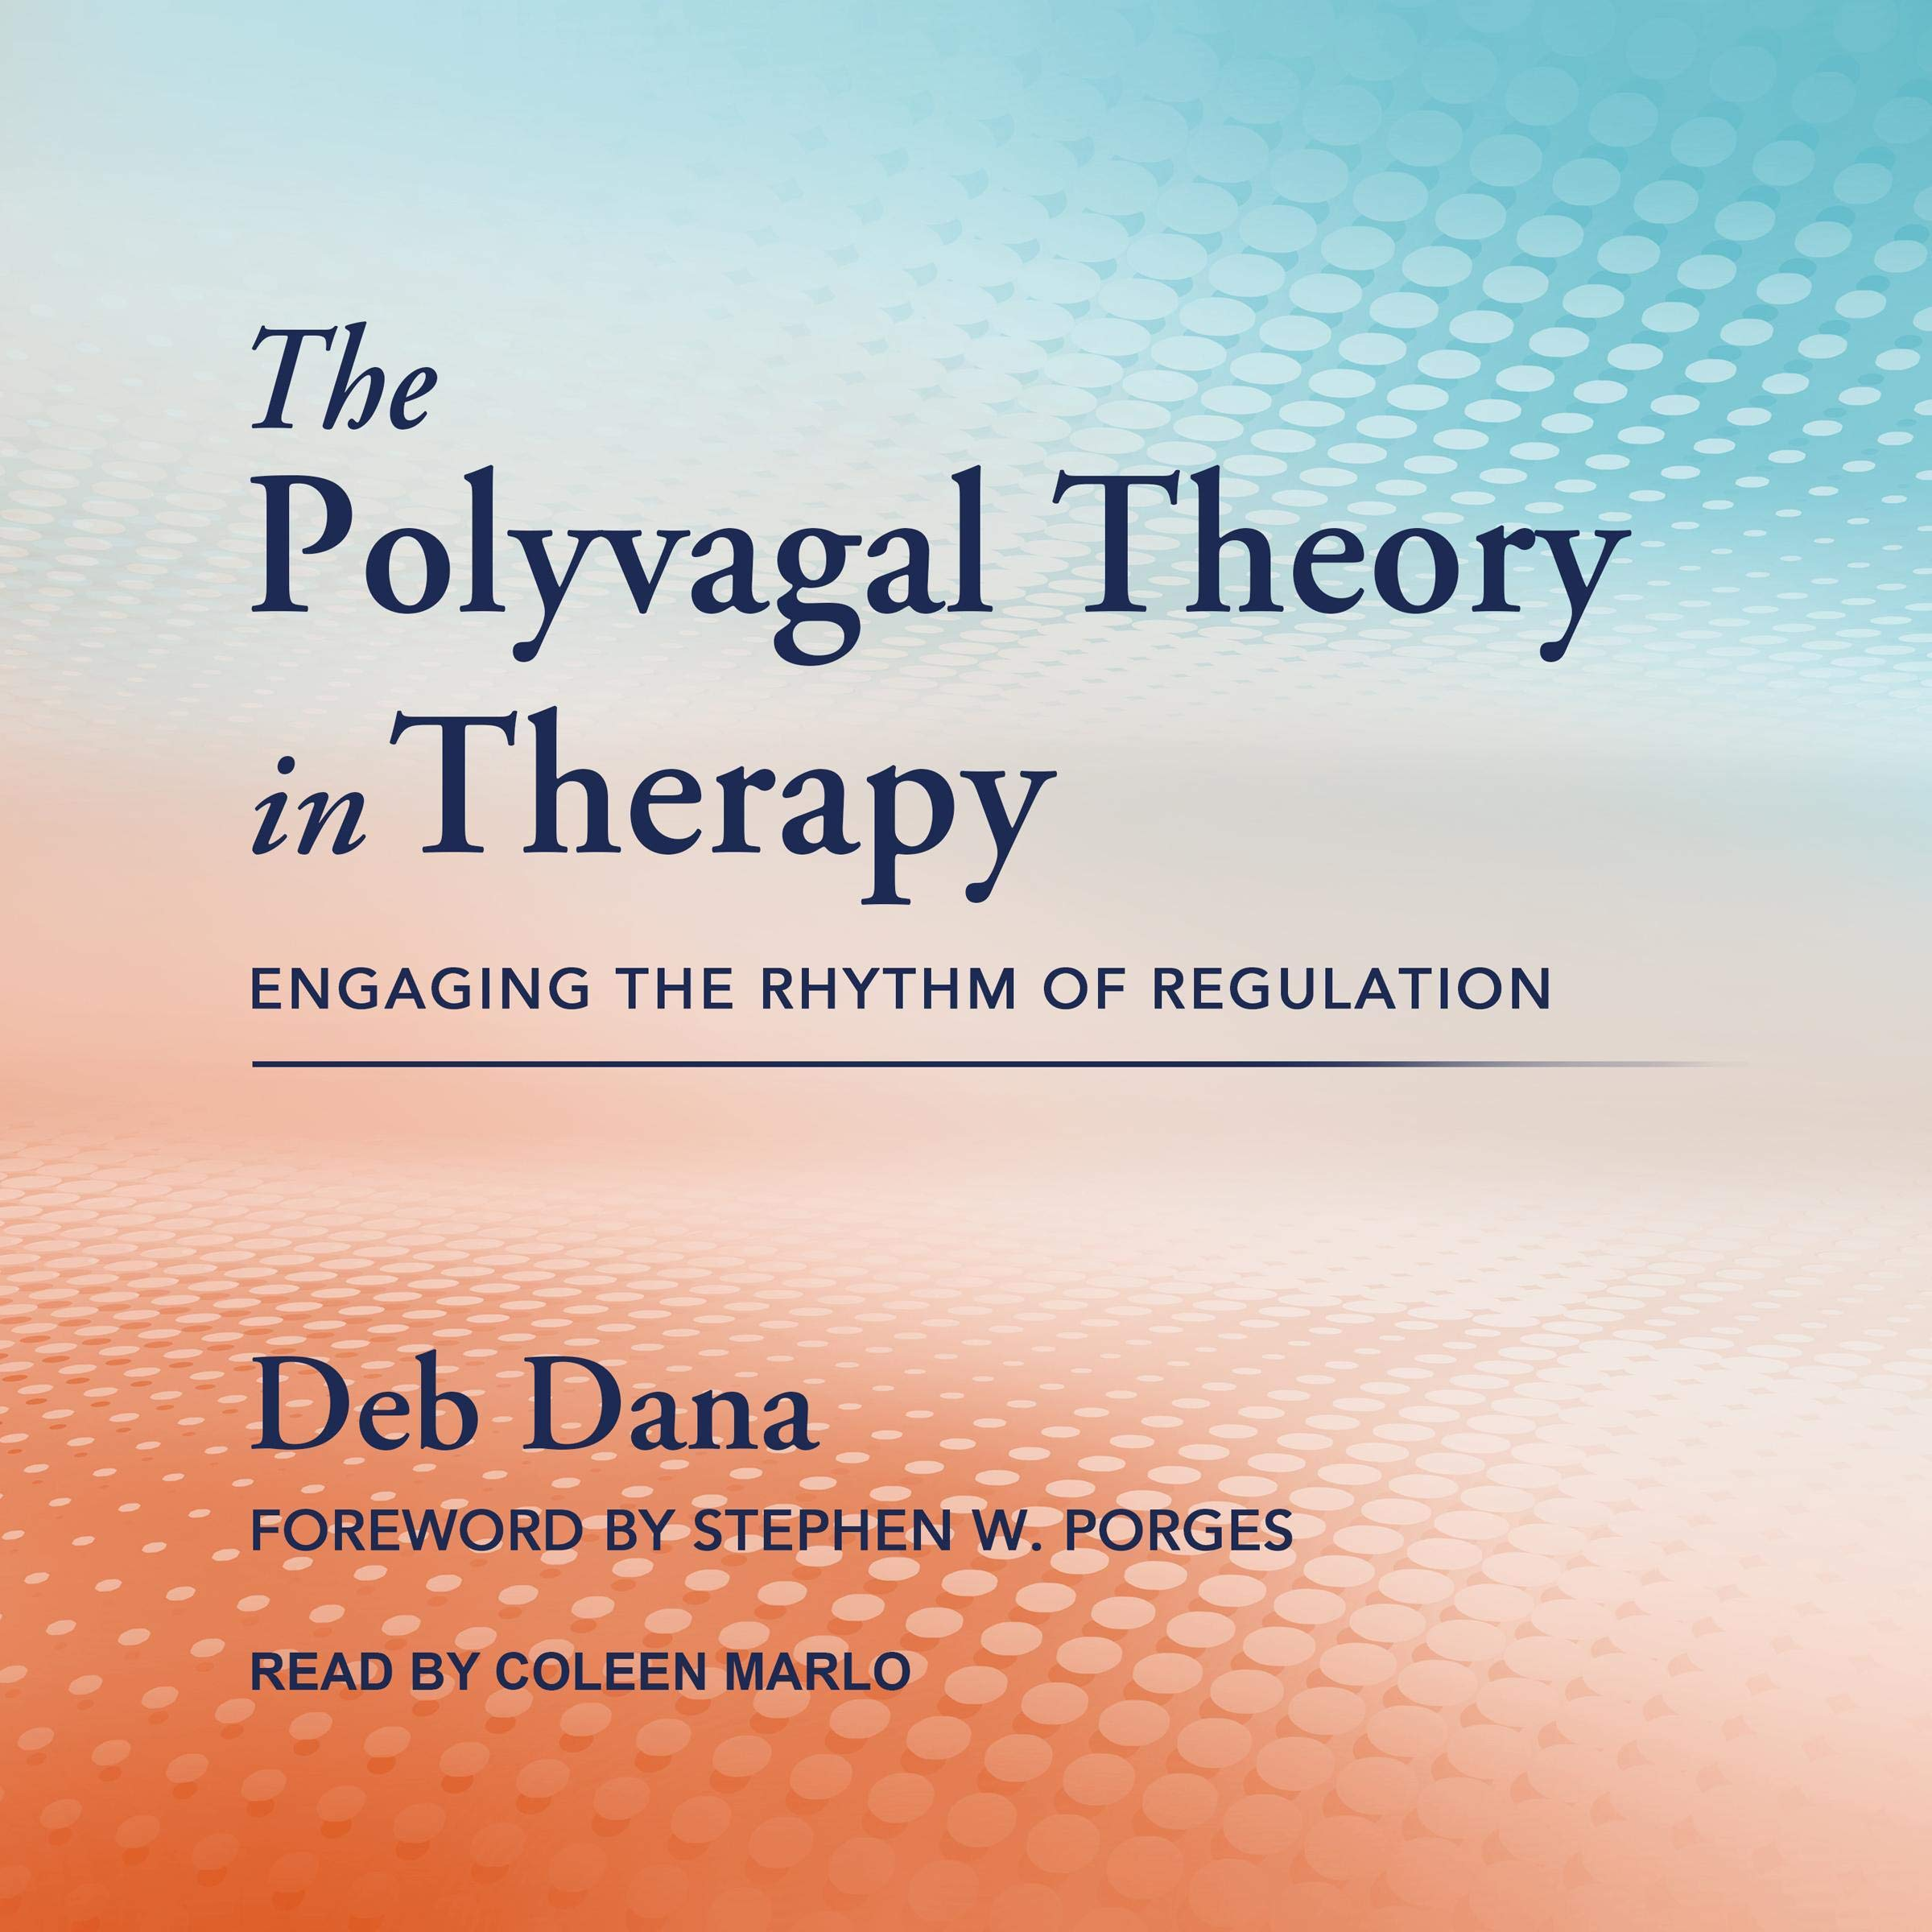 The Polyvagal Theory In Therapy  Engaging The Rhythm Of Regulation